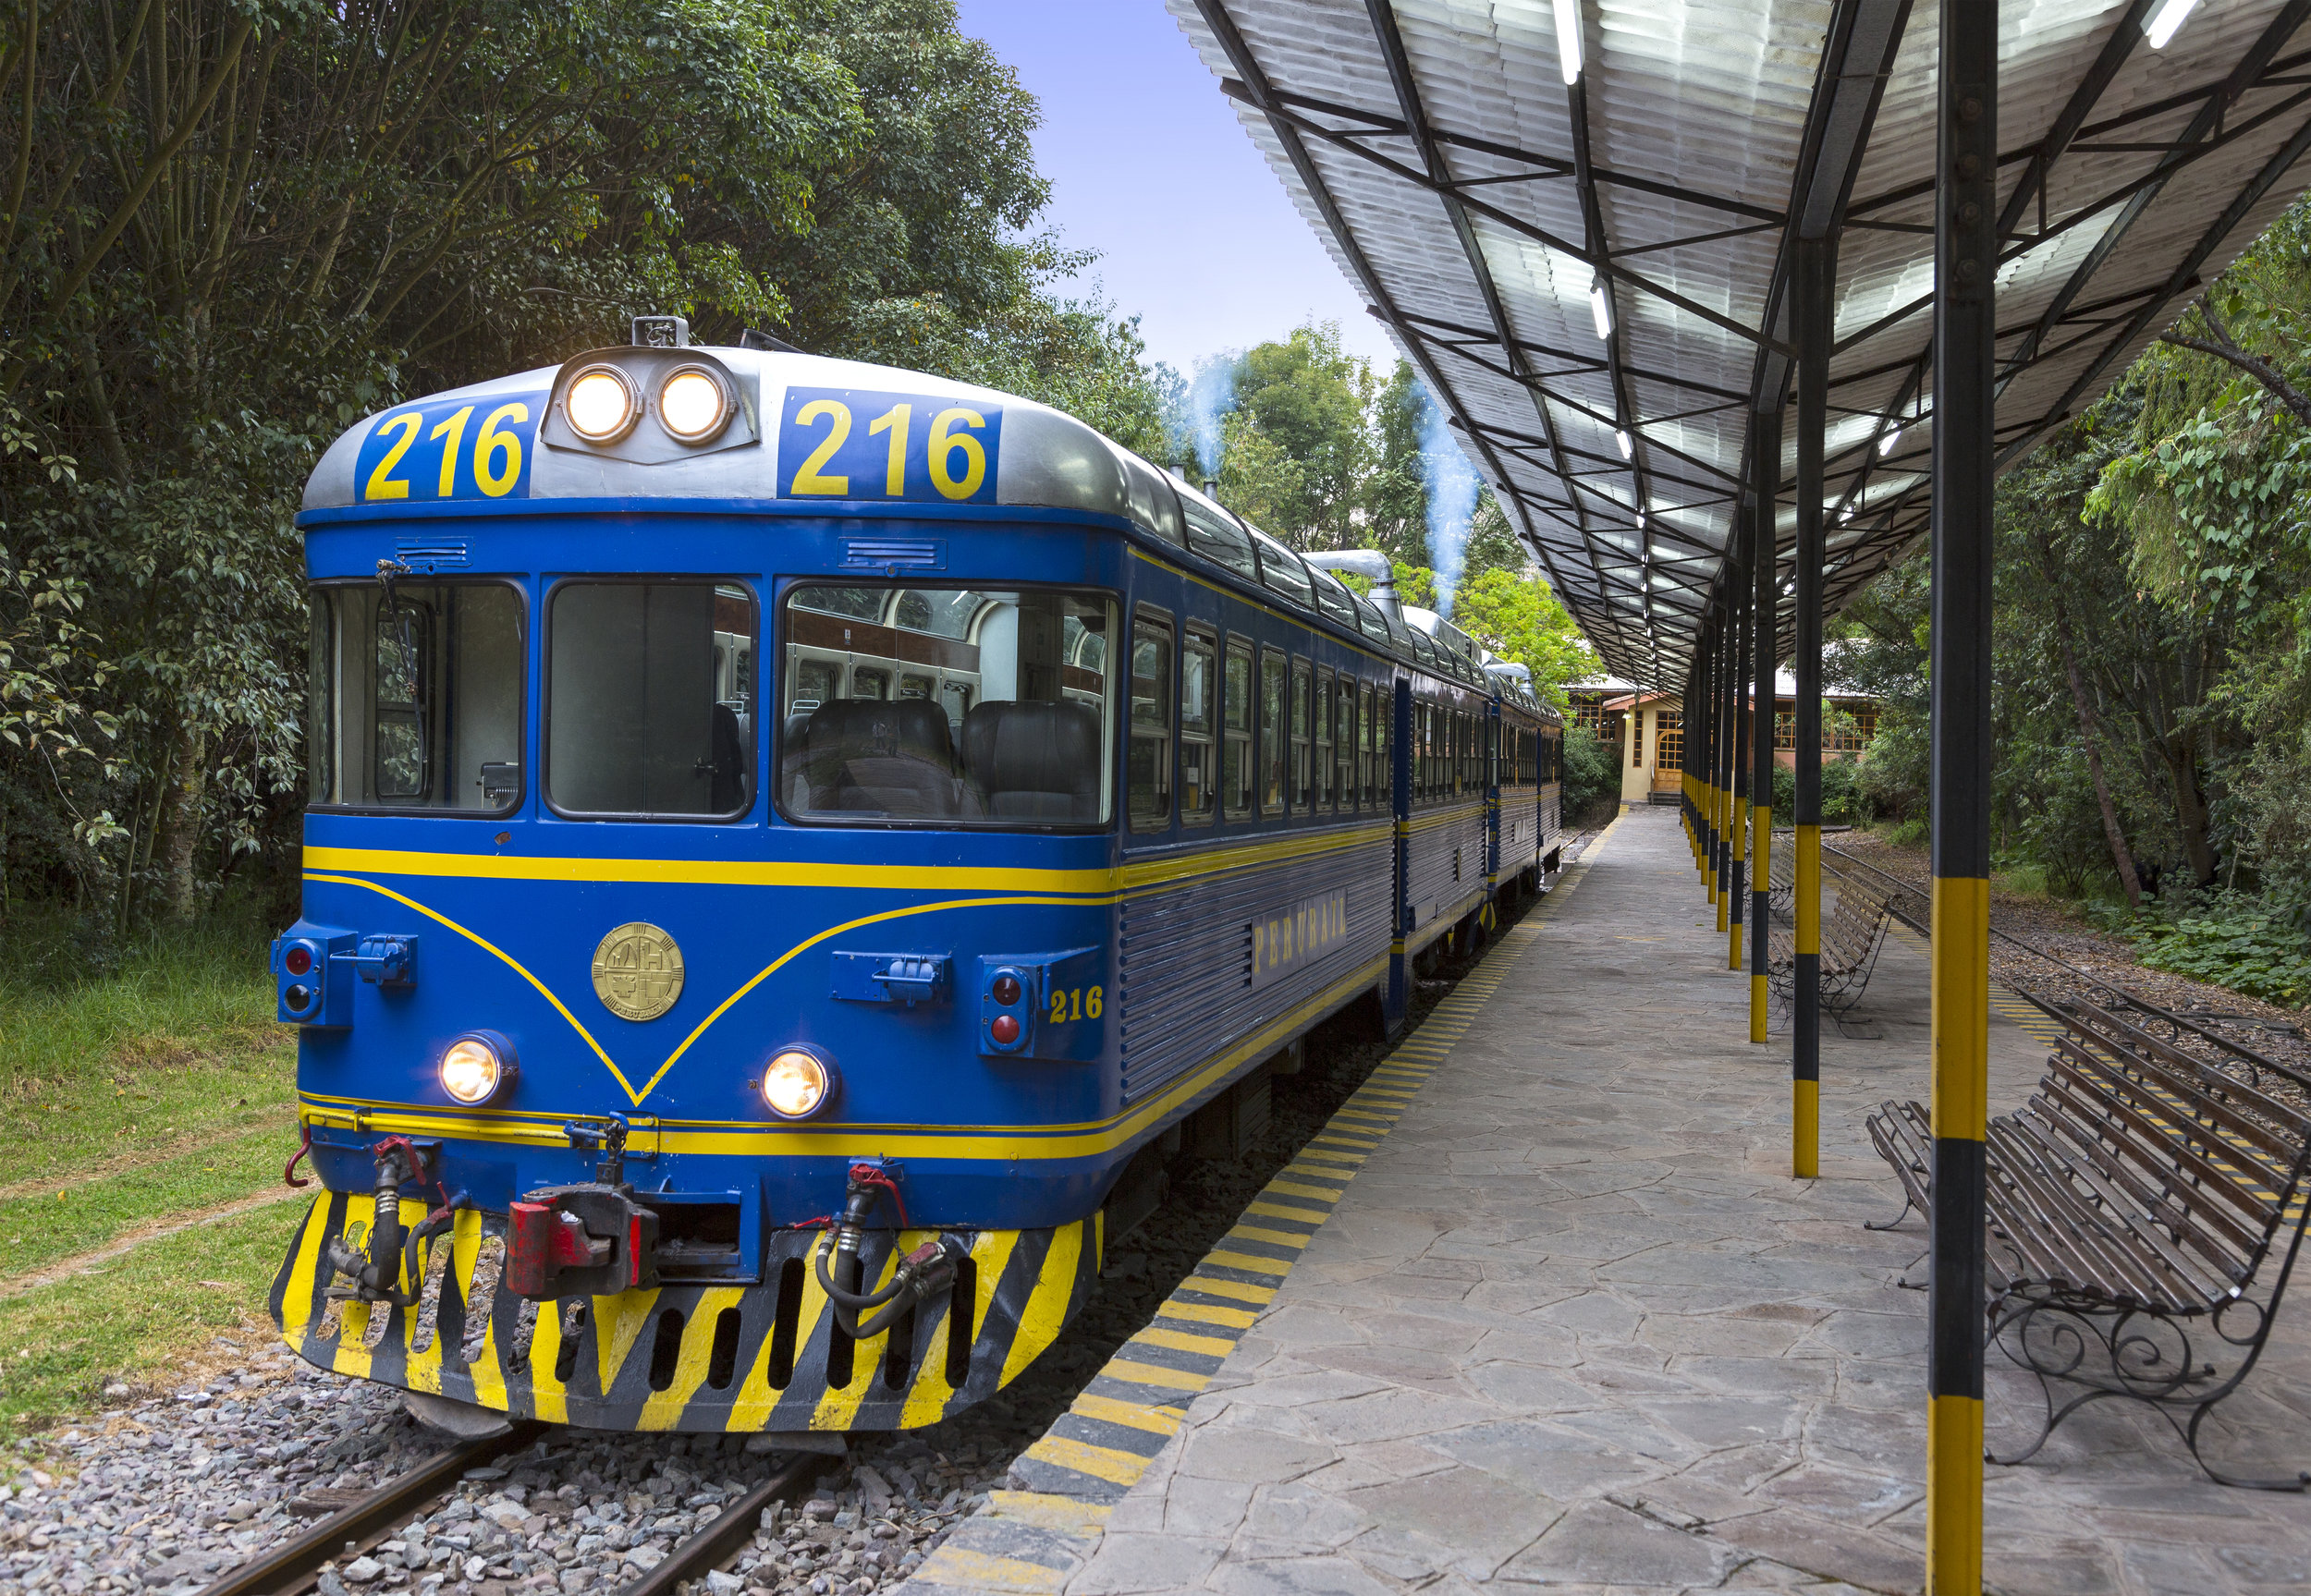 Train station on property at Tambo del Inka in Sacred Valley